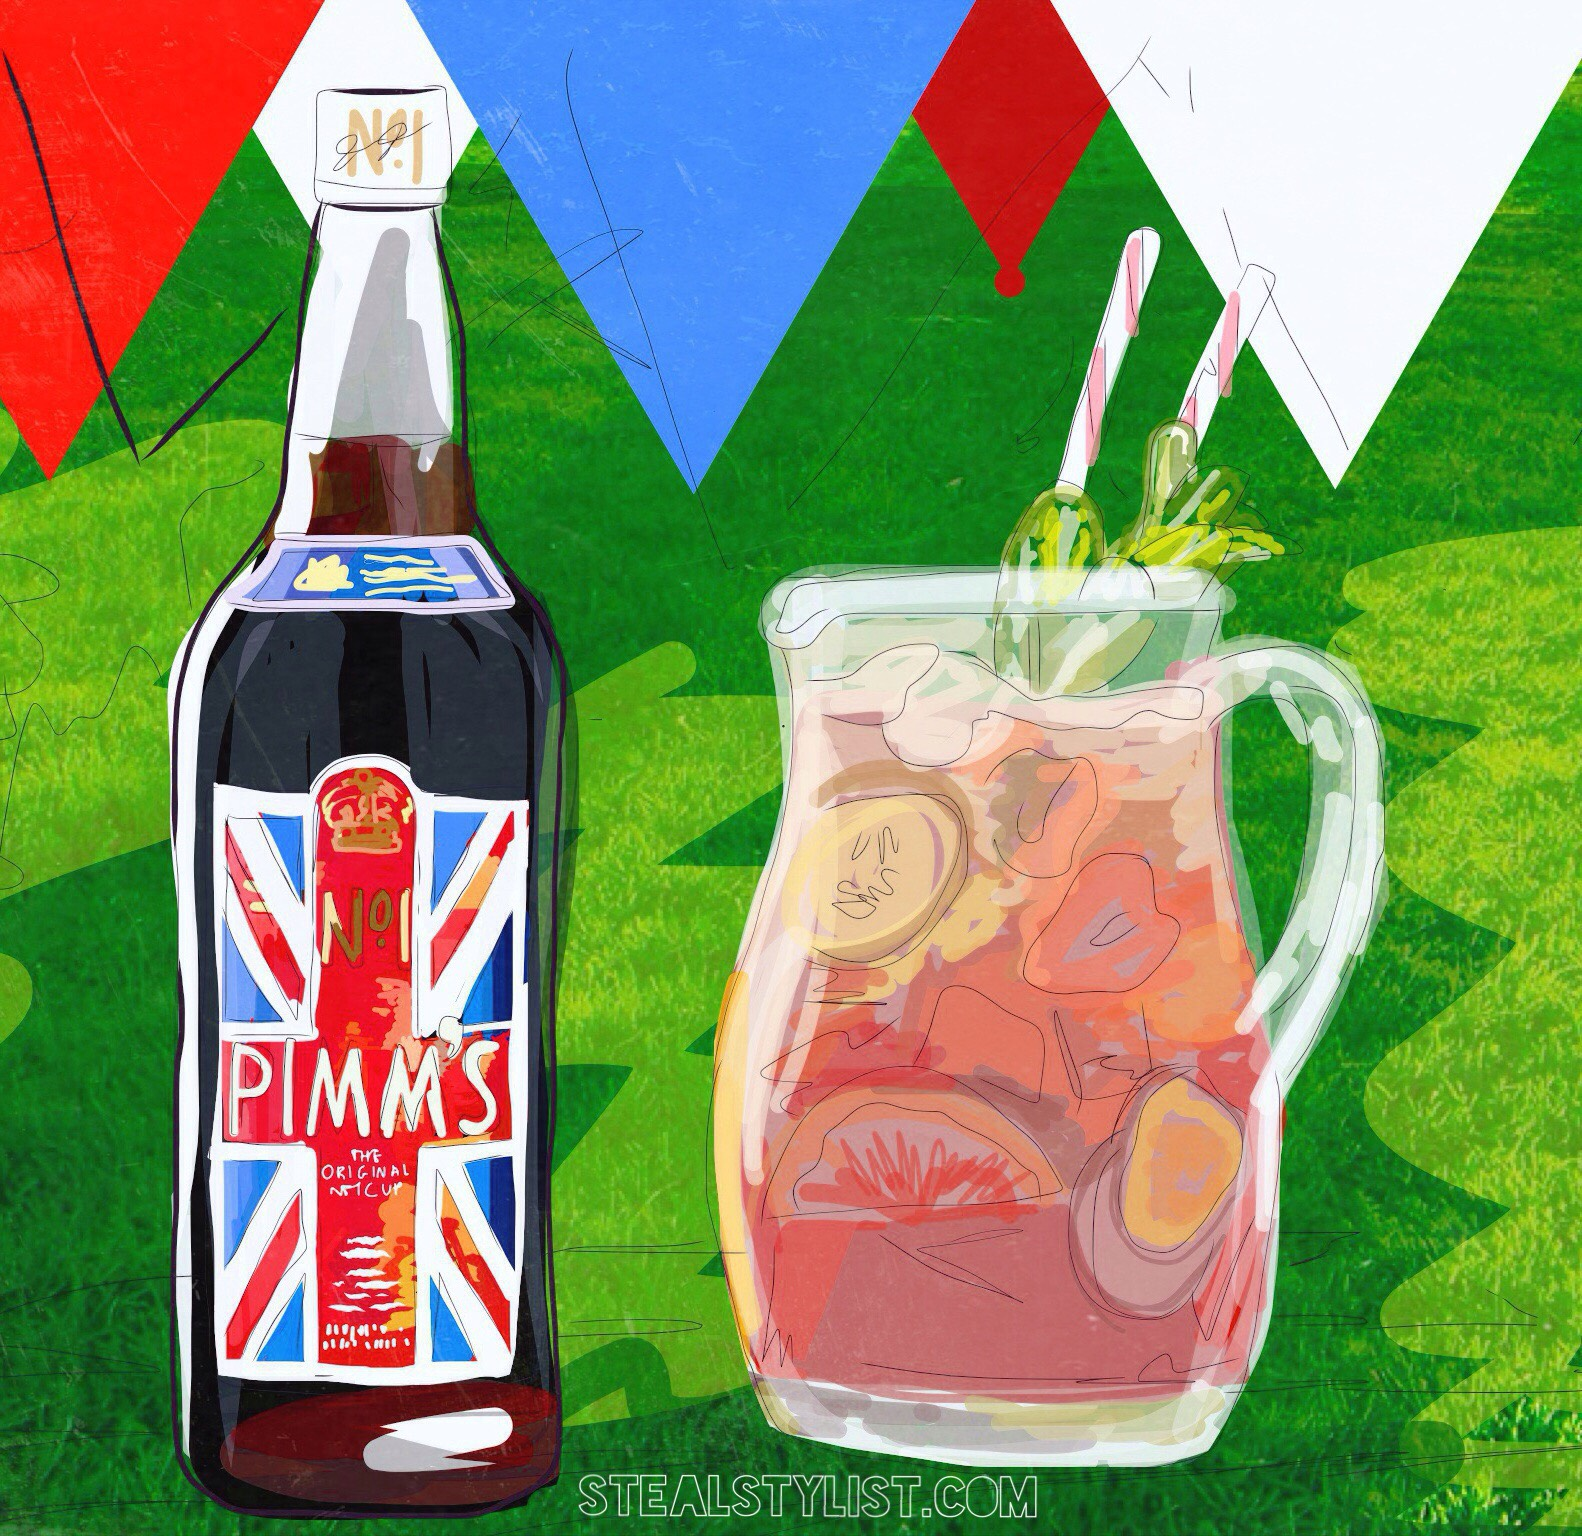 Tips for the perfect Summer Pimms- Stealstylist.com